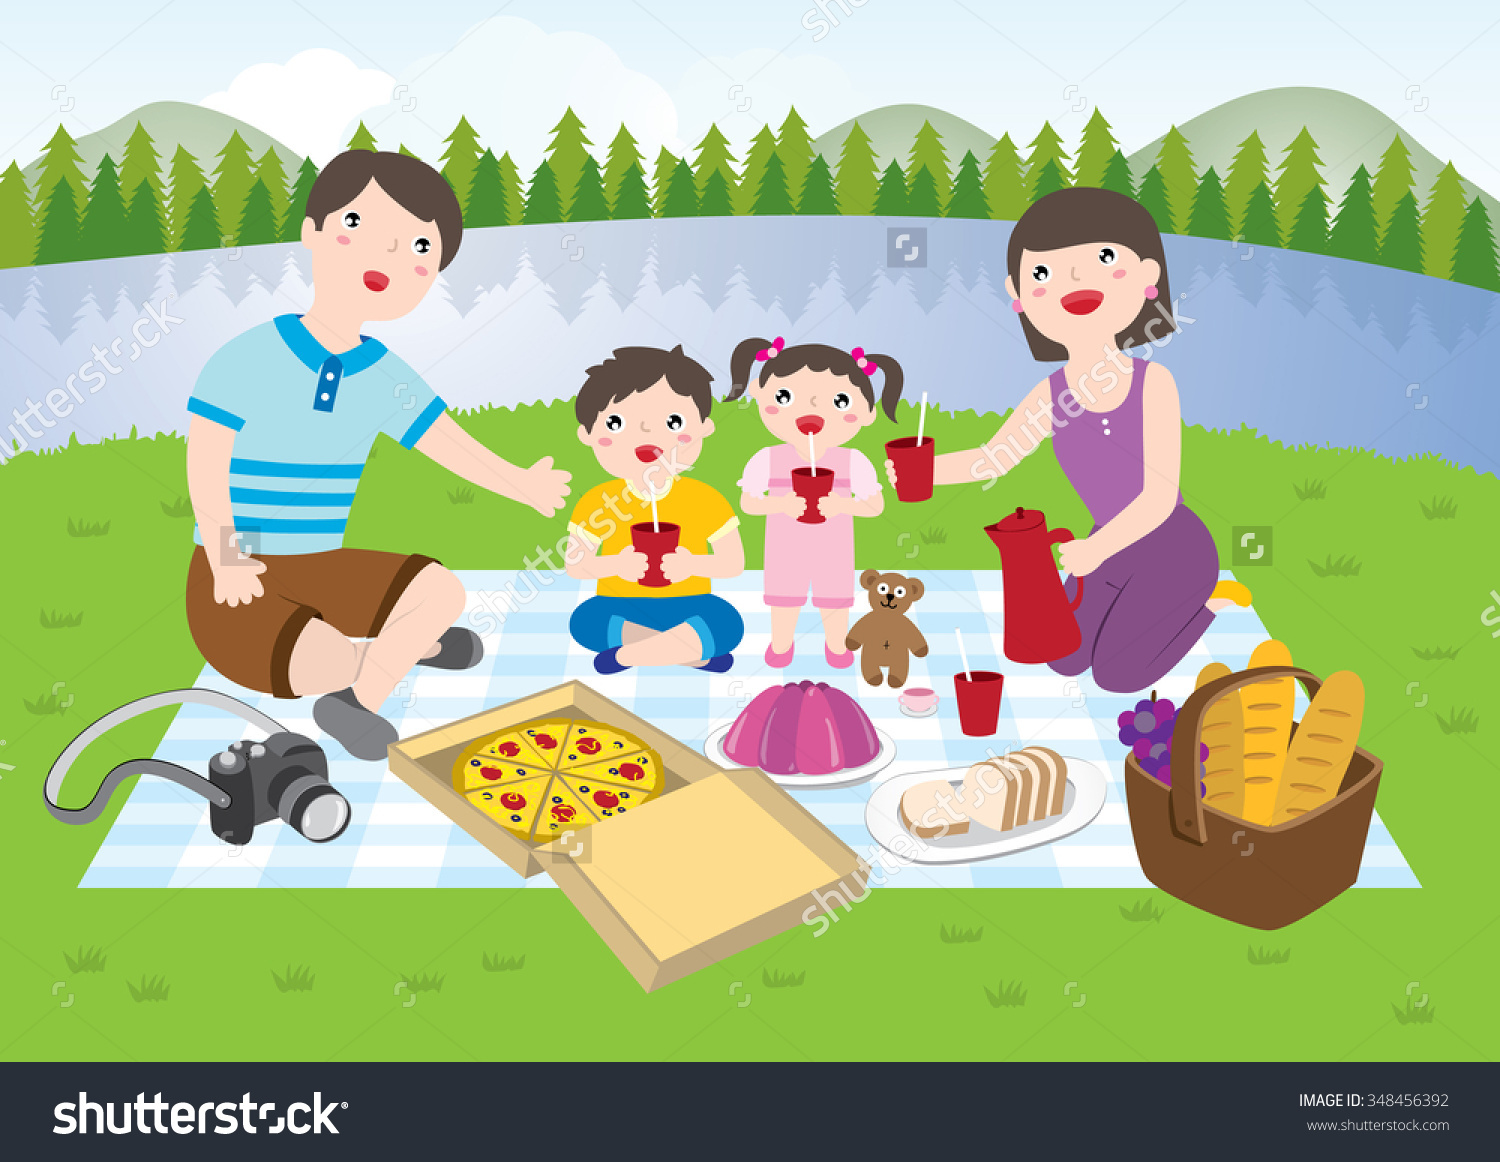 Picnic clipart mountain. Free family cliparts download